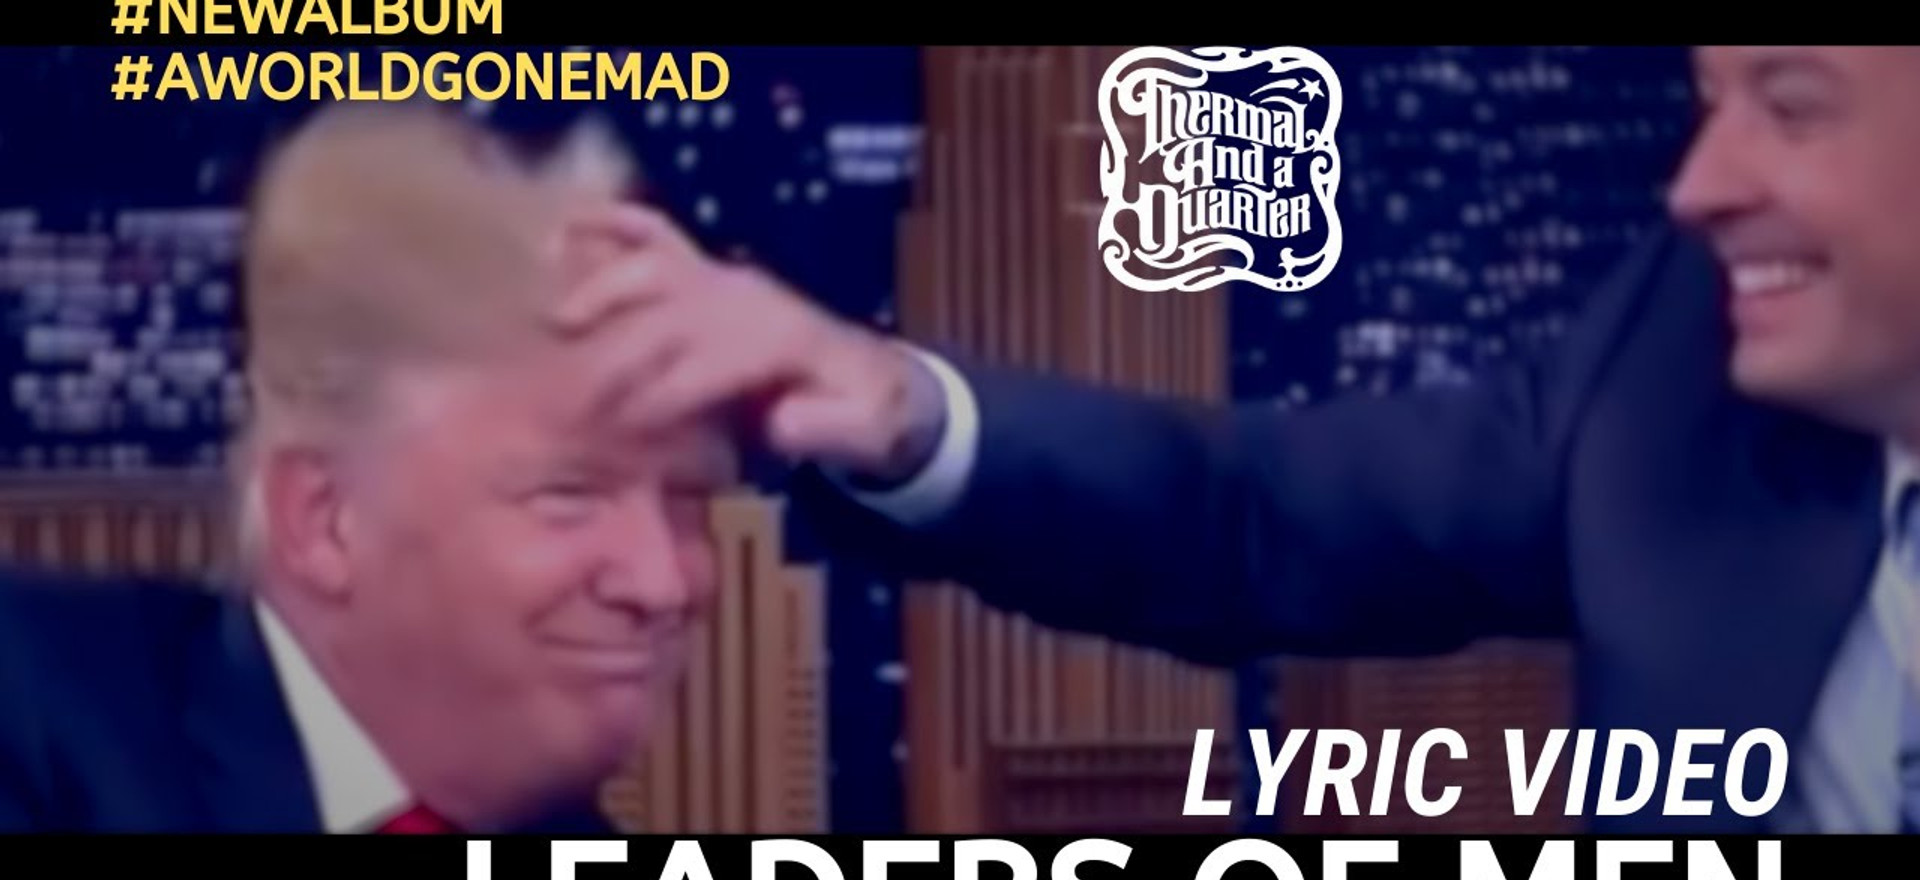 Thermal And A Quarter: Leaders of Men - Lyric Video